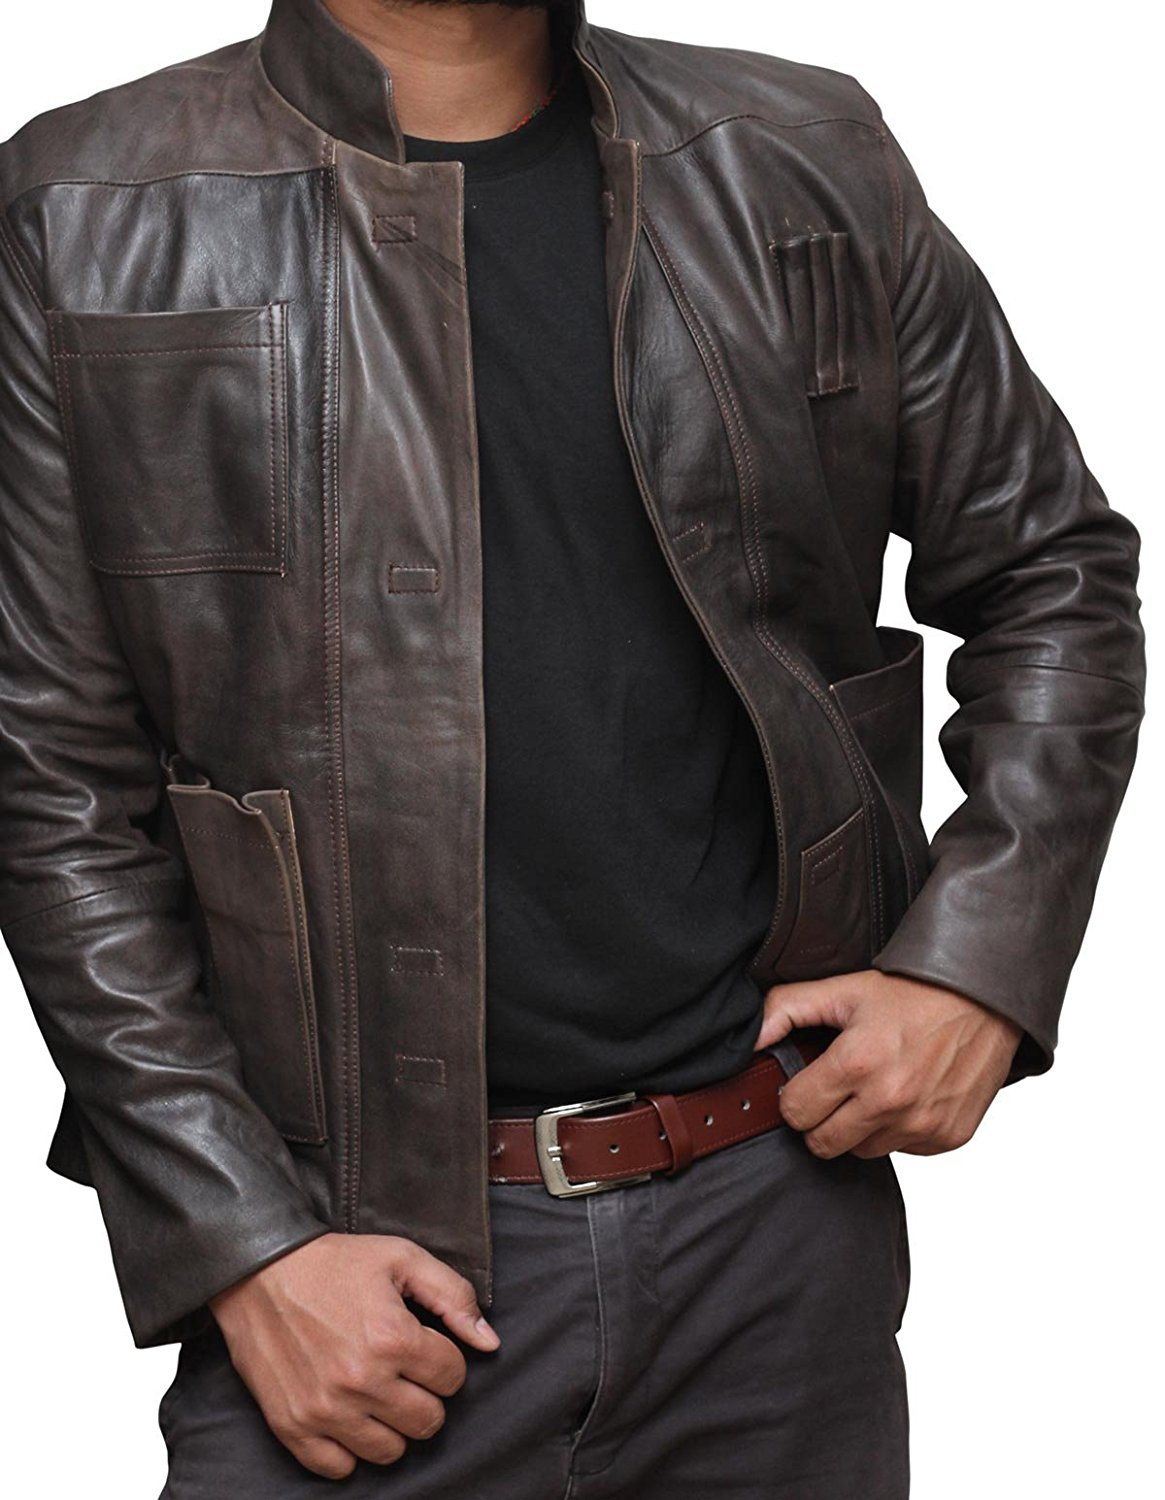 Han Solo Leather Jacket Cosplay - Star Wars Jacket Mens Gifts (XL) [RL-HNSO-BR-XL]